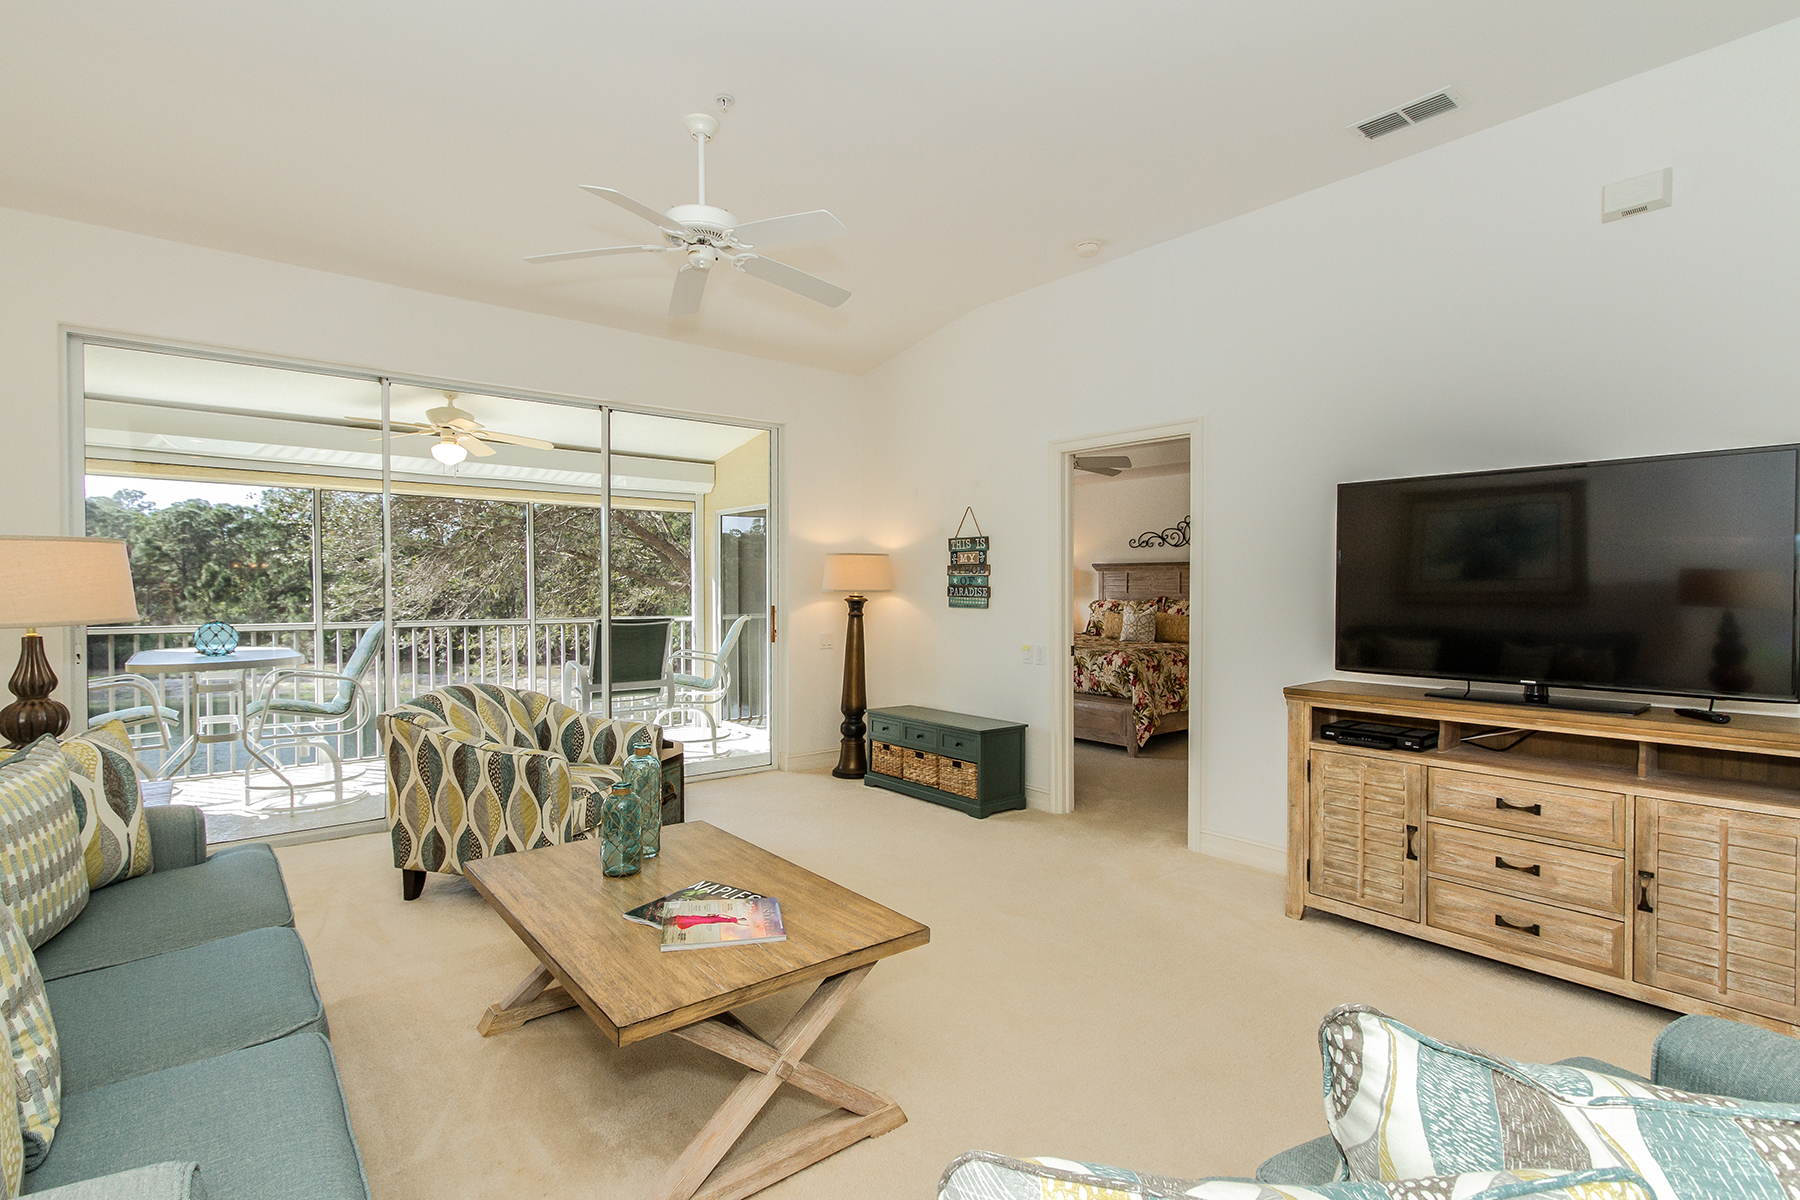 Condominium for Rent at TARPON COVE-MARTINQUE 1025 Tarpon Cove Dr 203, Naples, Florida 34110 United States